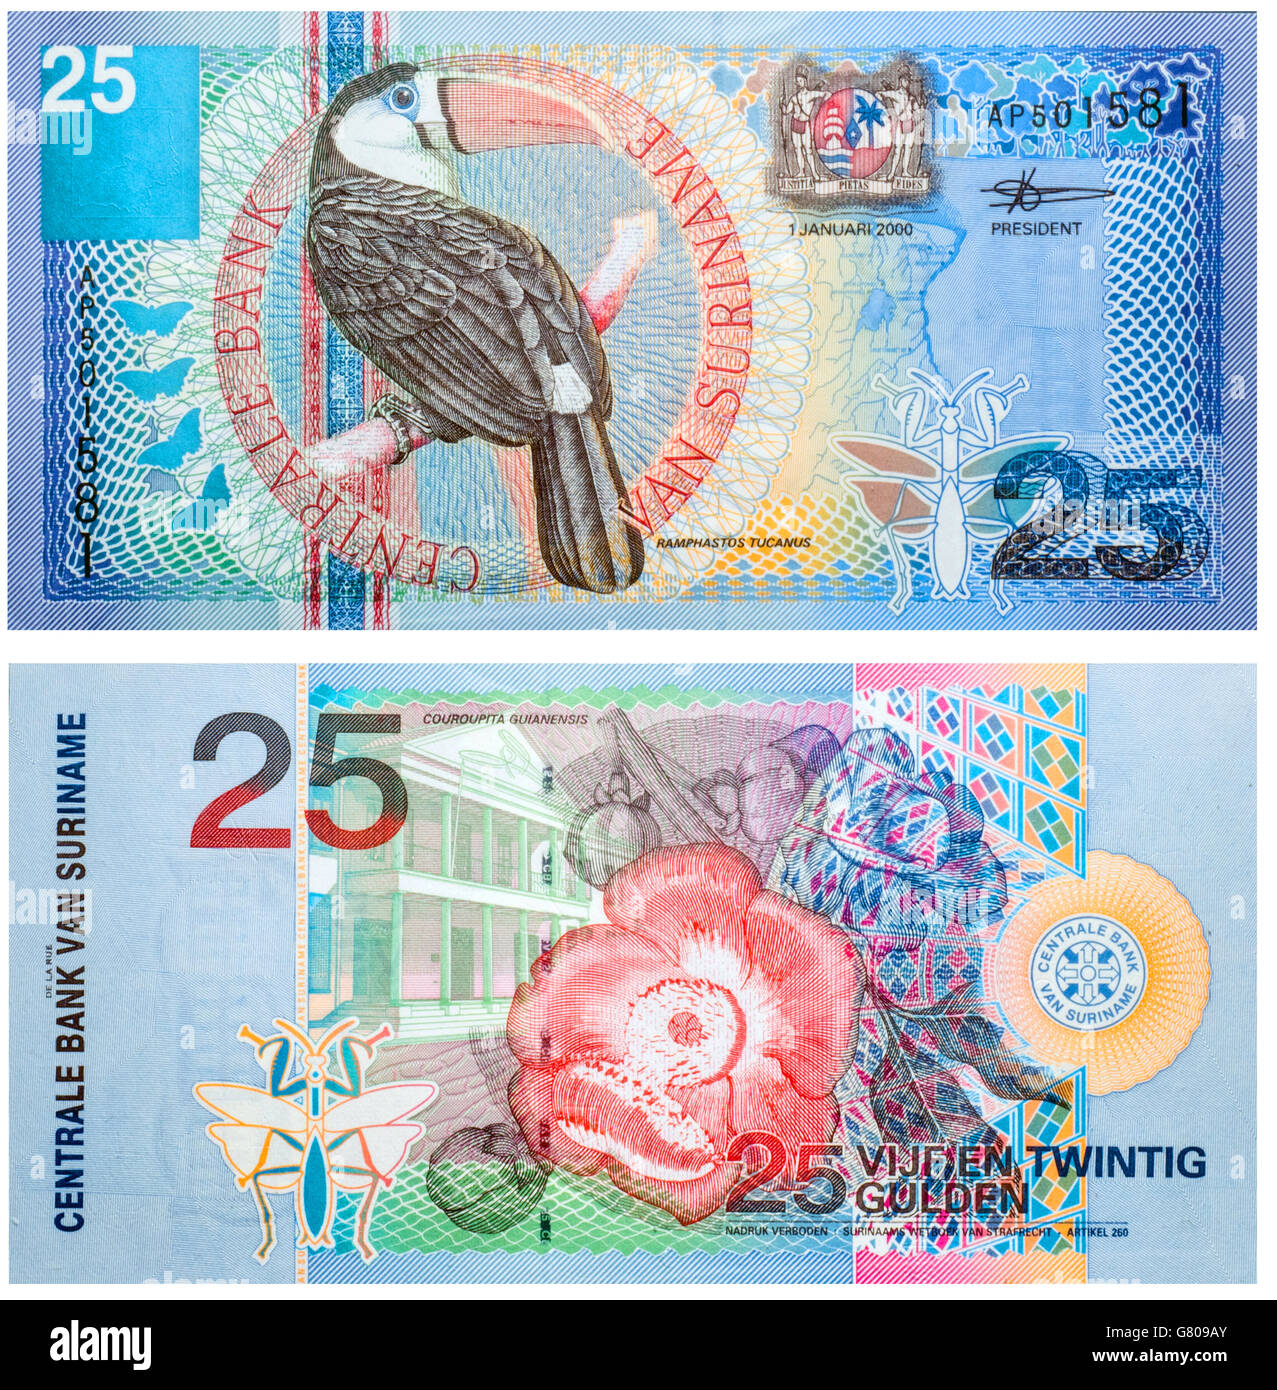 Banknote 25 Gulden Suriname front and back isolated on white emitted on 2000. Red-billed toucan on front and a flower - Stock Image